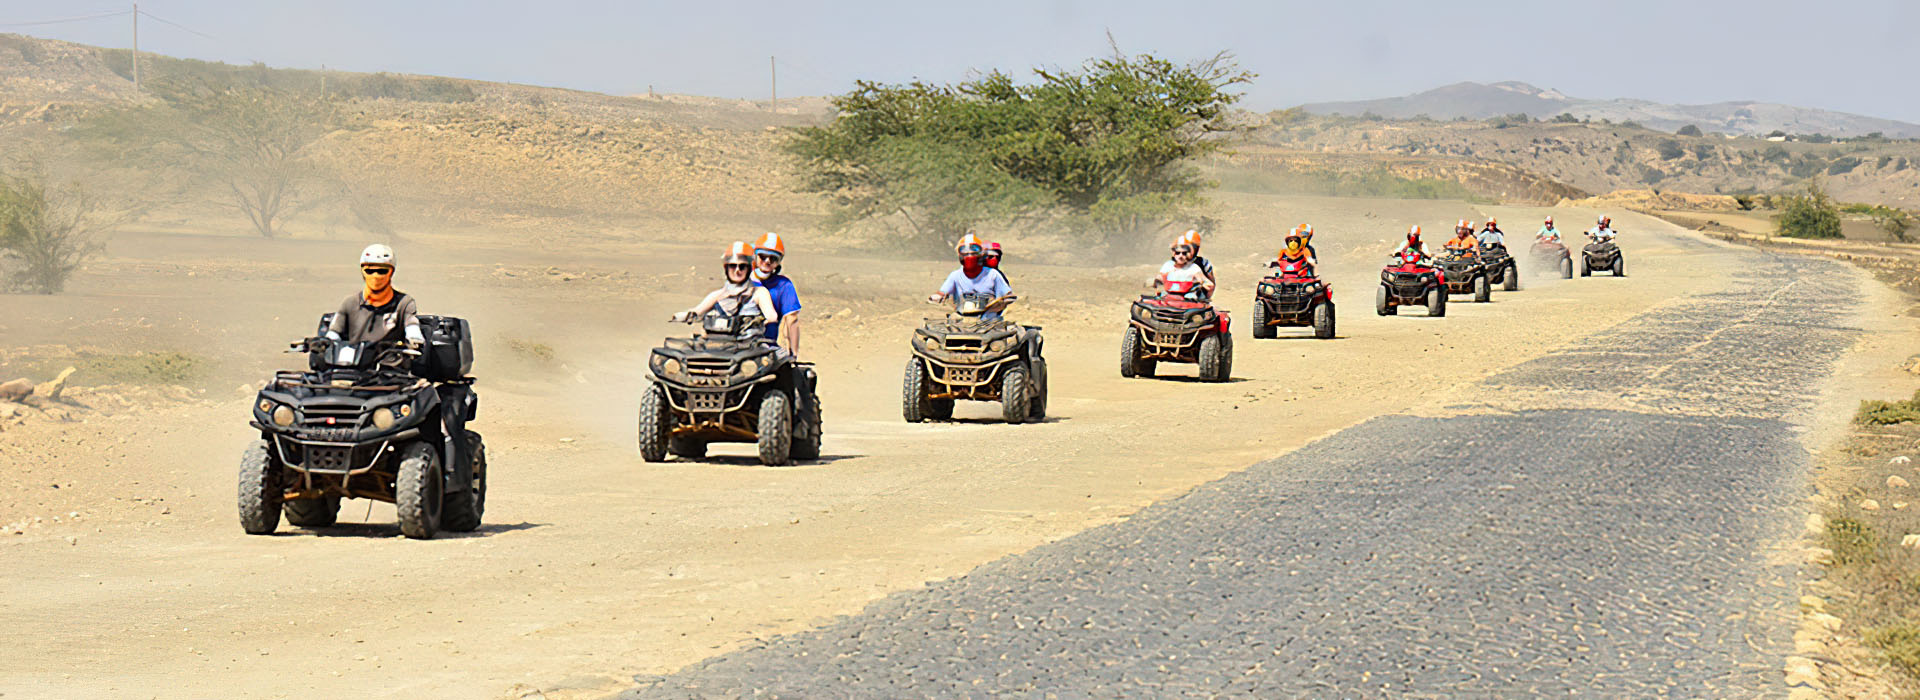 quad excursion boavista